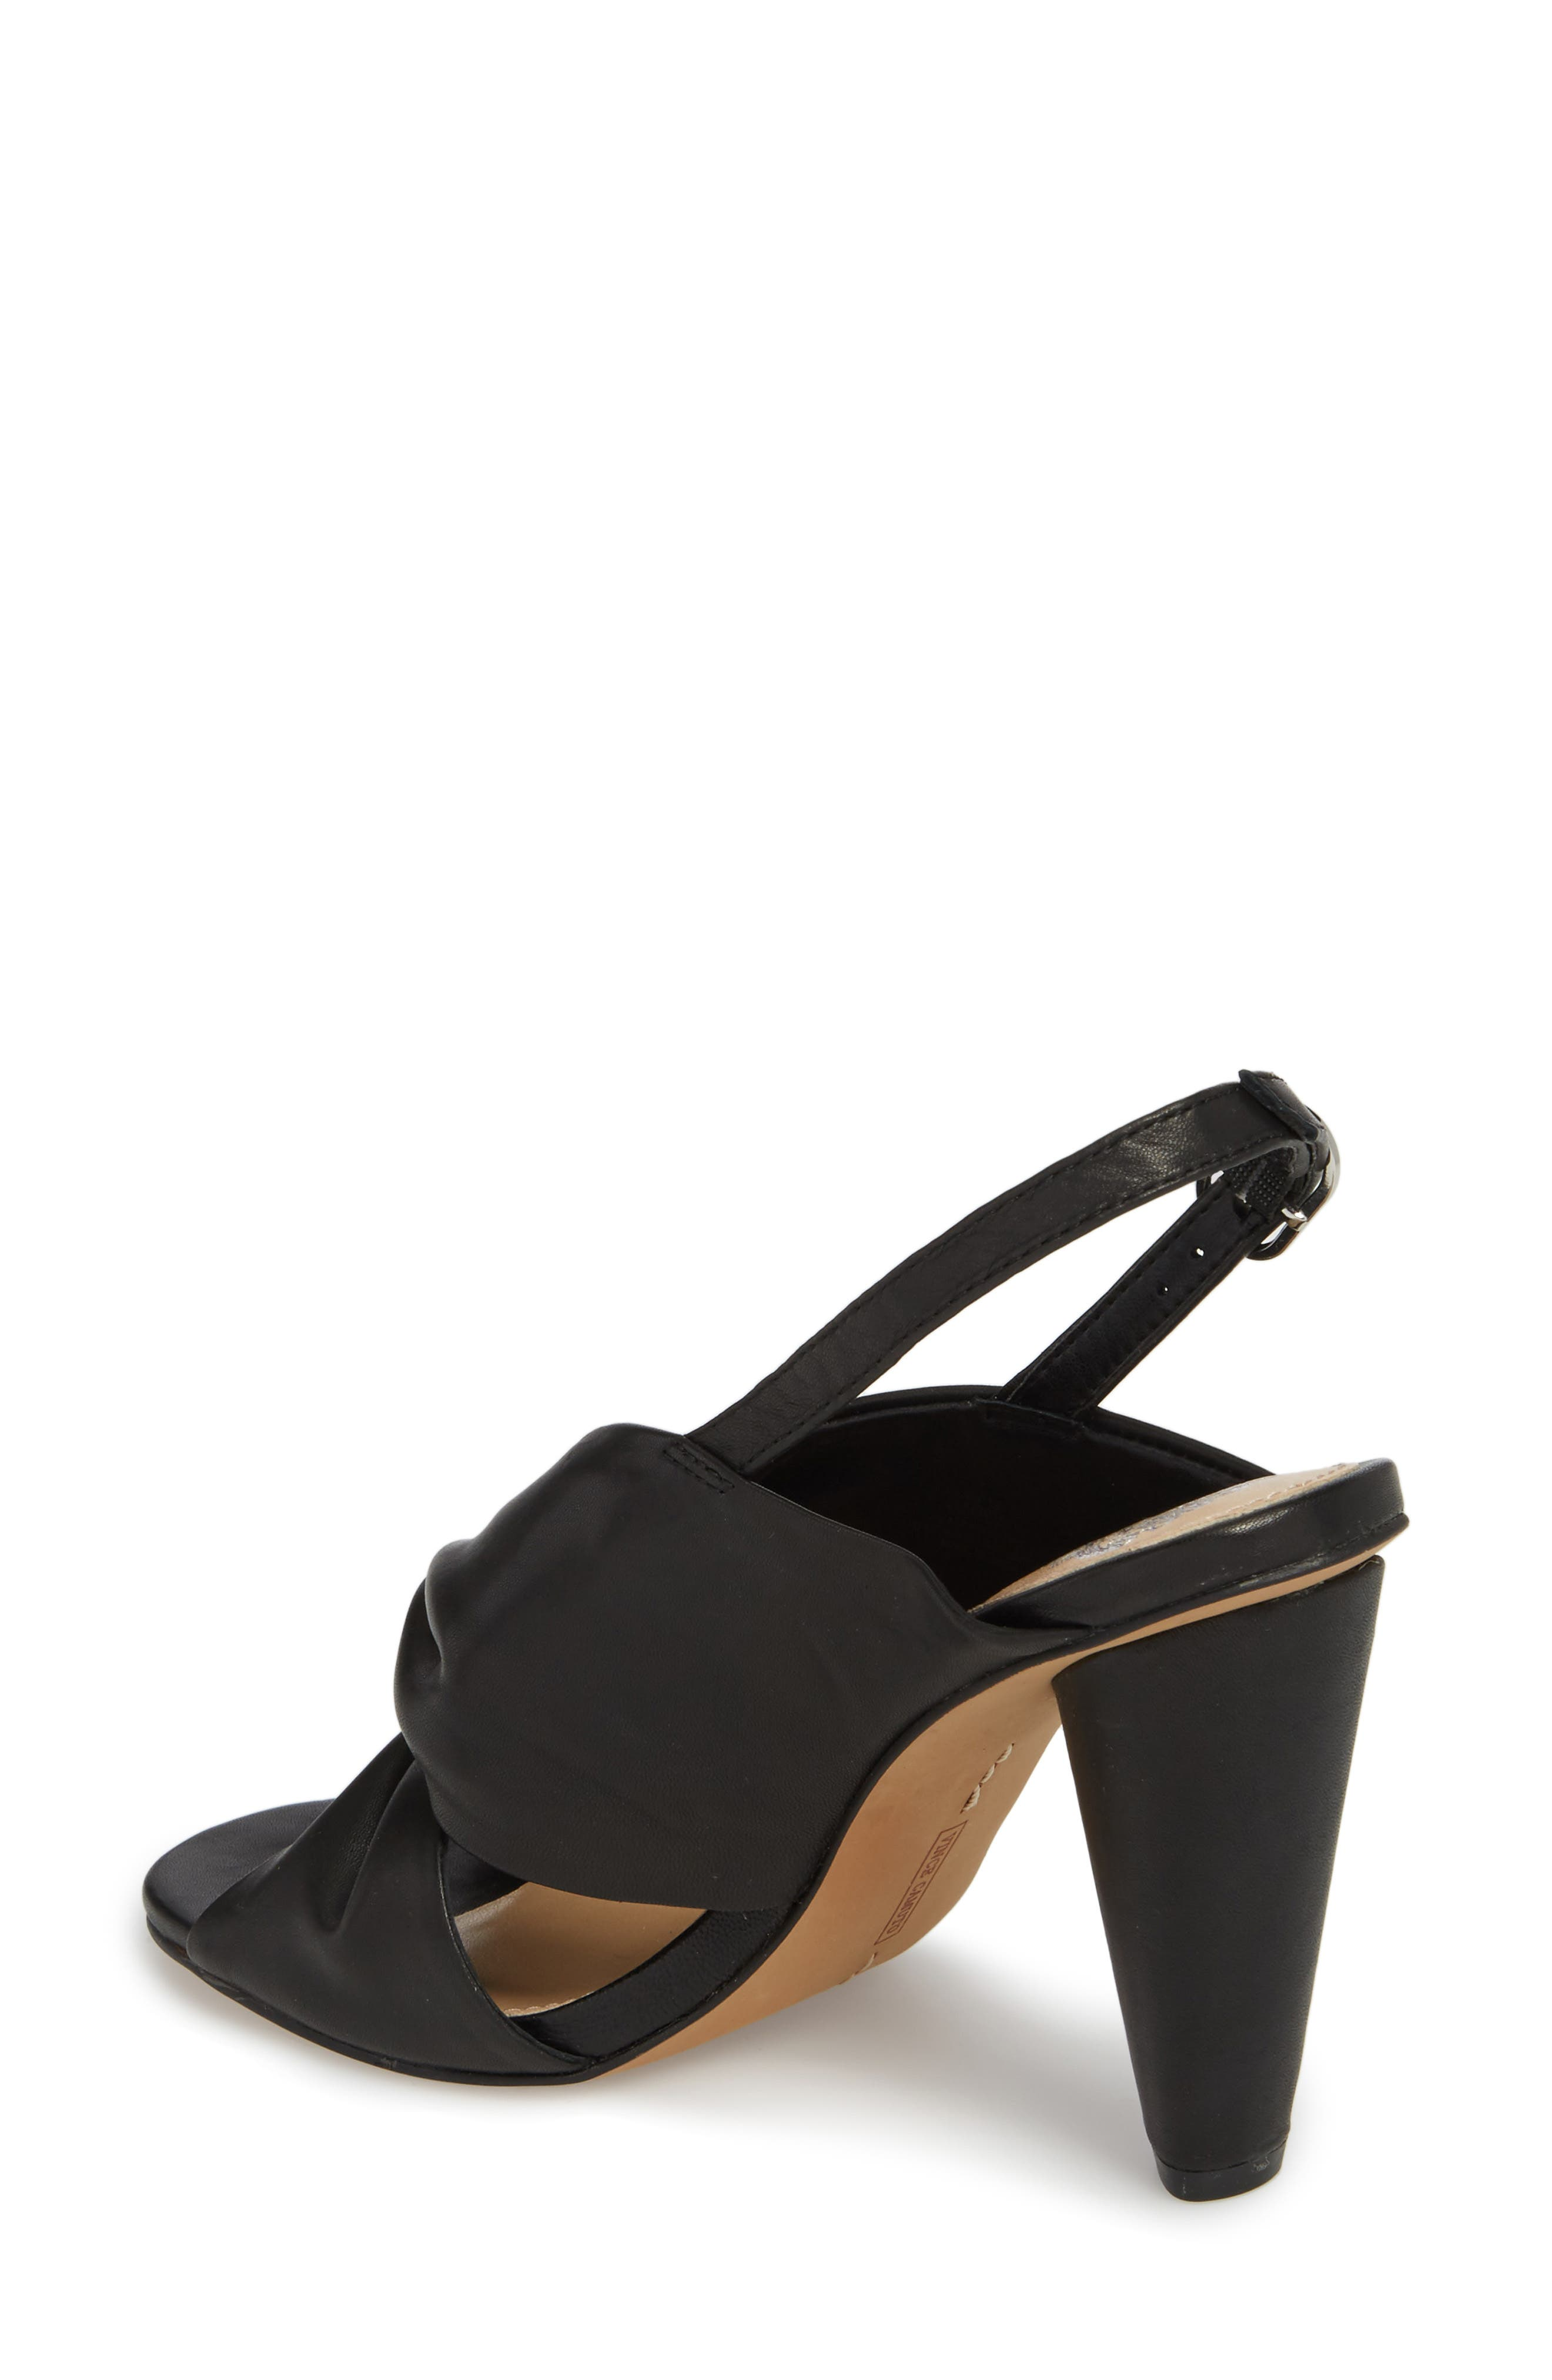 Kattie Slingback Sandal,                             Alternate thumbnail 2, color,                             BLACK LEATHER